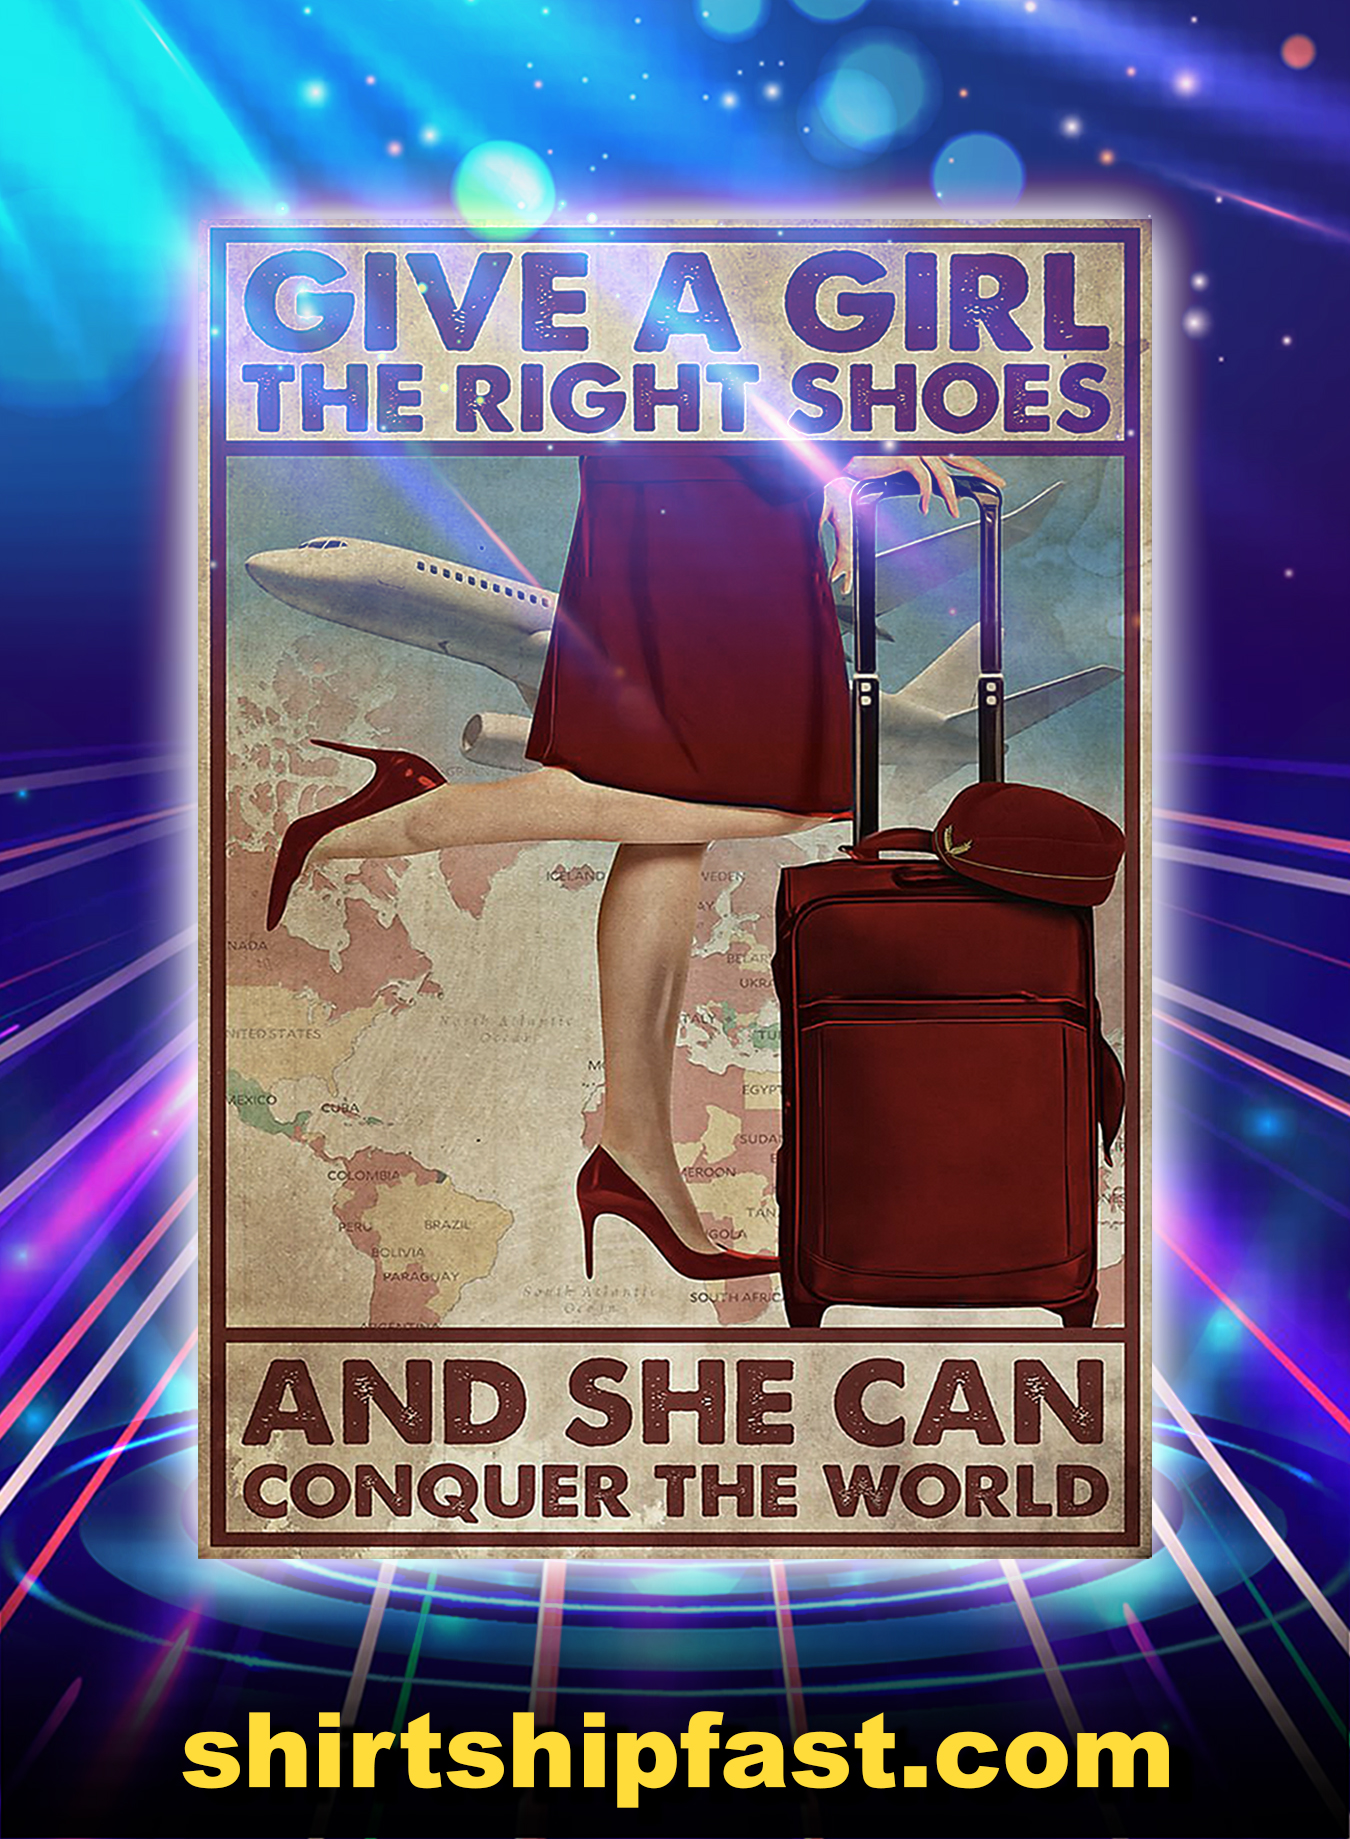 Flight attendant give a girl the right shoes and she can conquer the world poster - A3